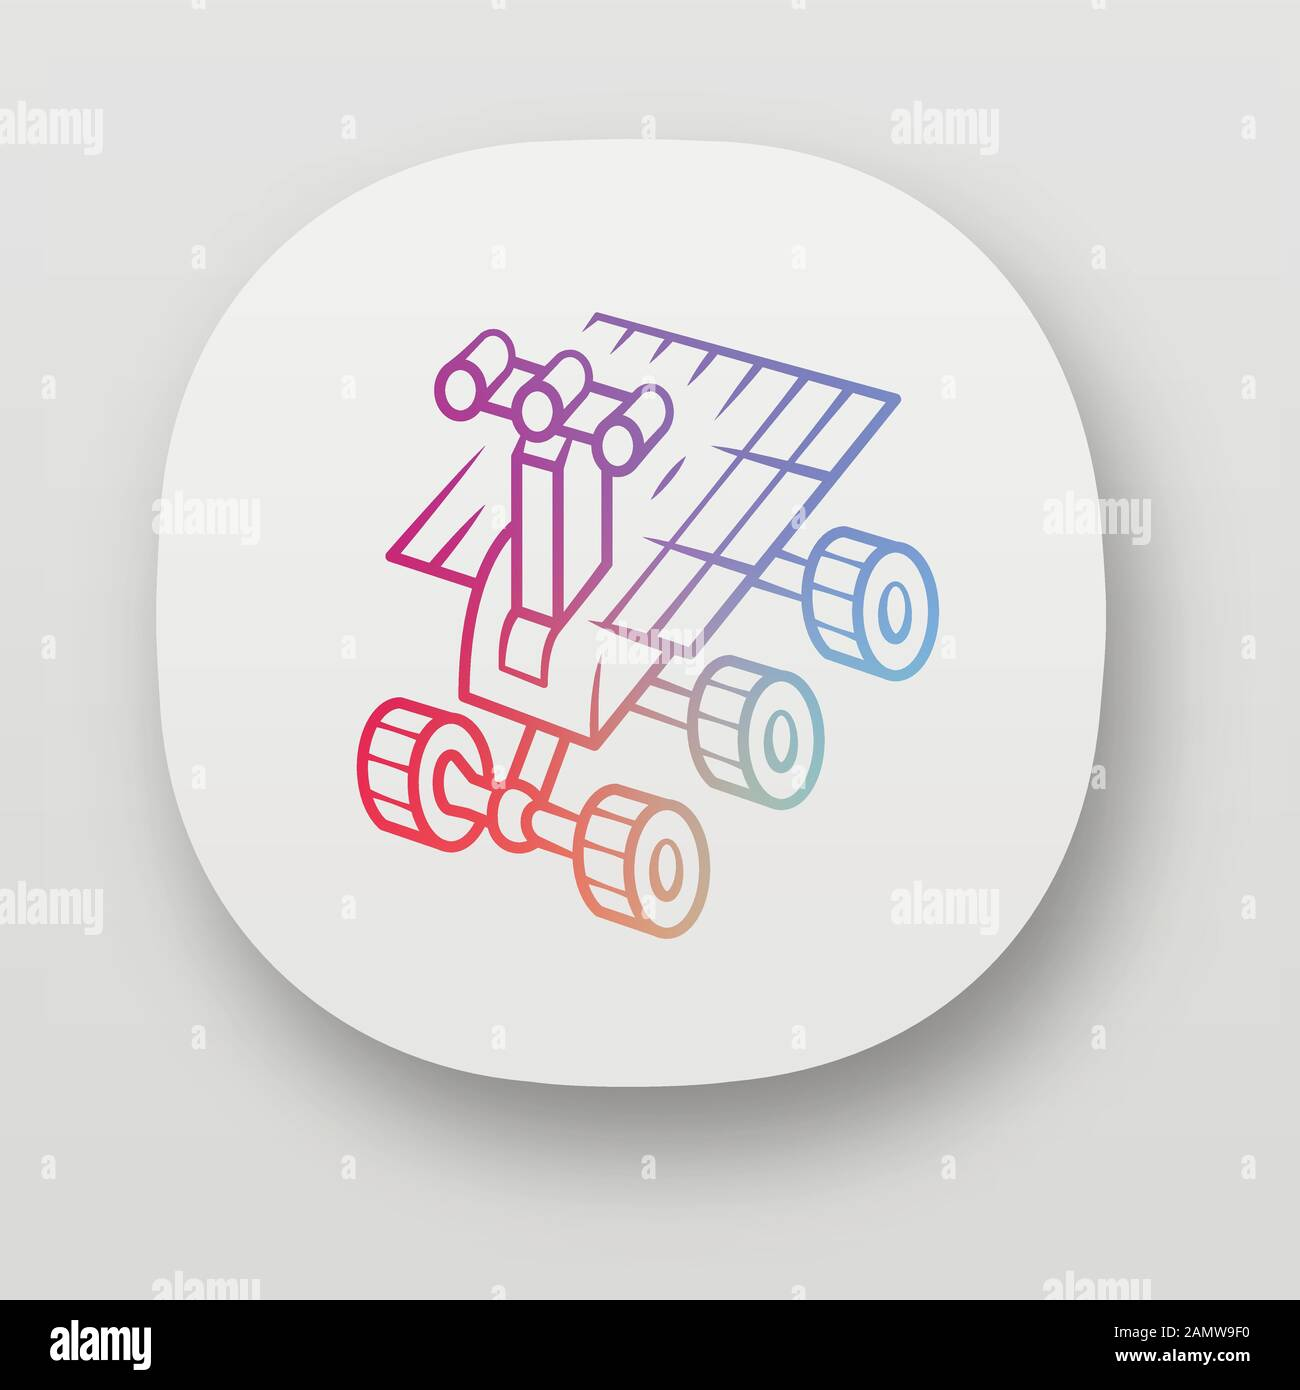 Space robot app icon. Moon rover. Moonwalker. Apparatus for studying planets surface. Space exploration. UI/UX user interface. Web or mobile applicati Stock Vector